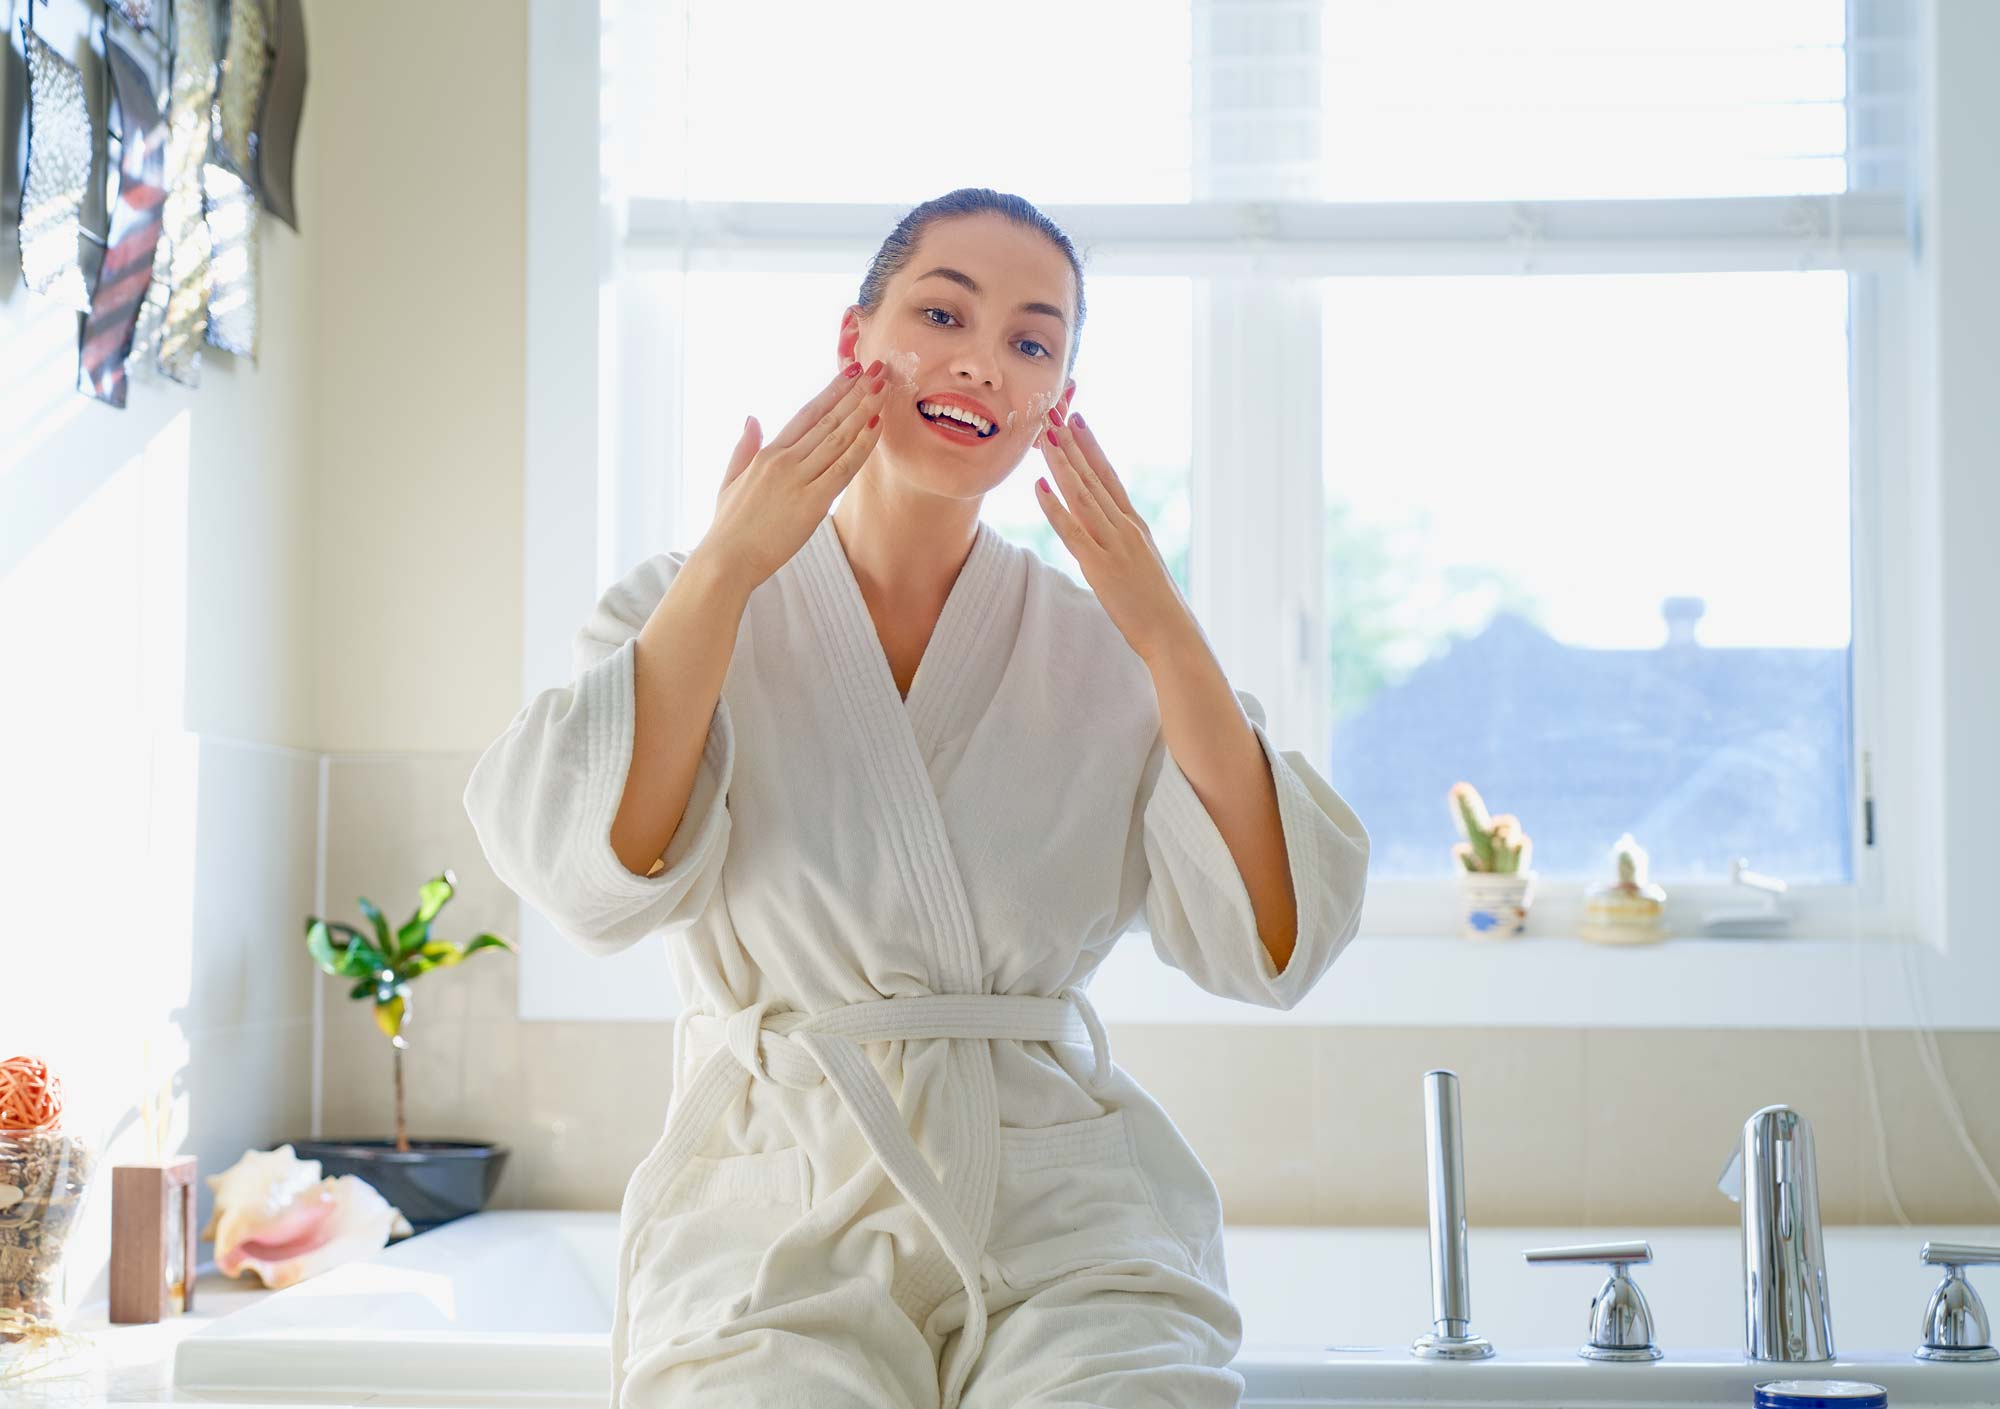 Lockdown survival: At-home self-care and beauty tips